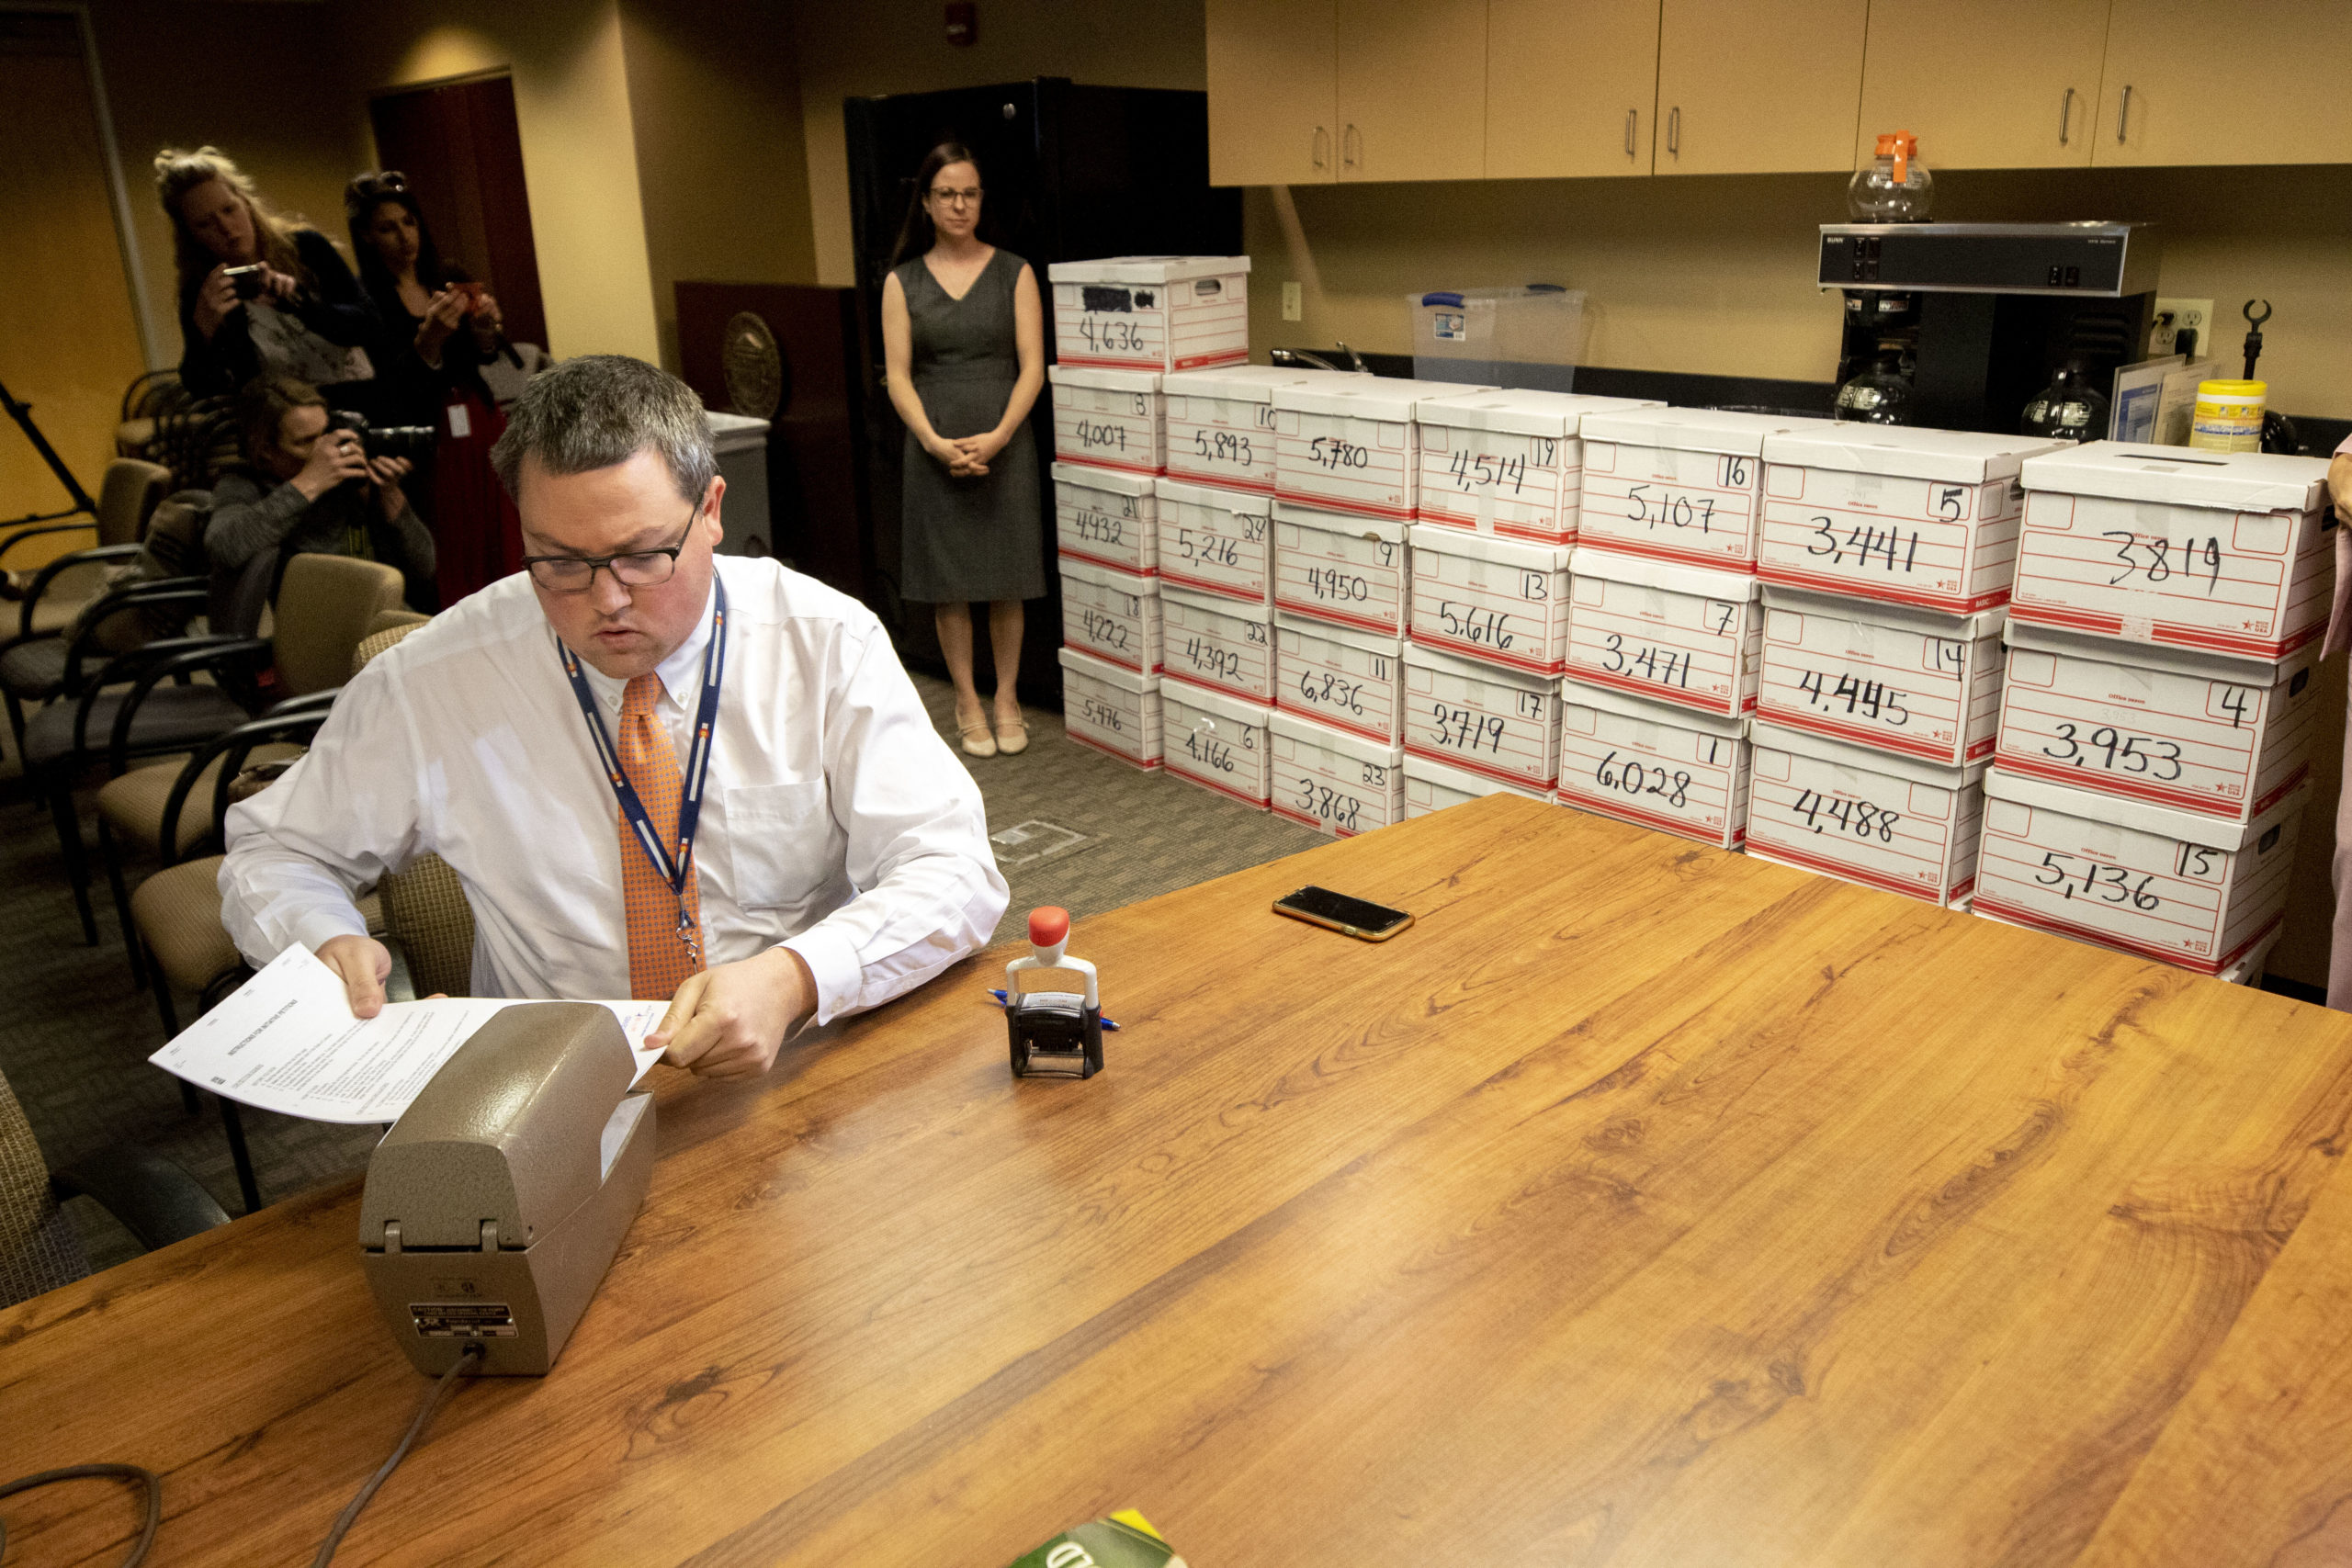 Jeff Mustin, petitions lead with the Colorado Secretary of State's office, timestamps a delivery of signatures for a 22-weeks abortion ban ballot measure. March 4, 2020.